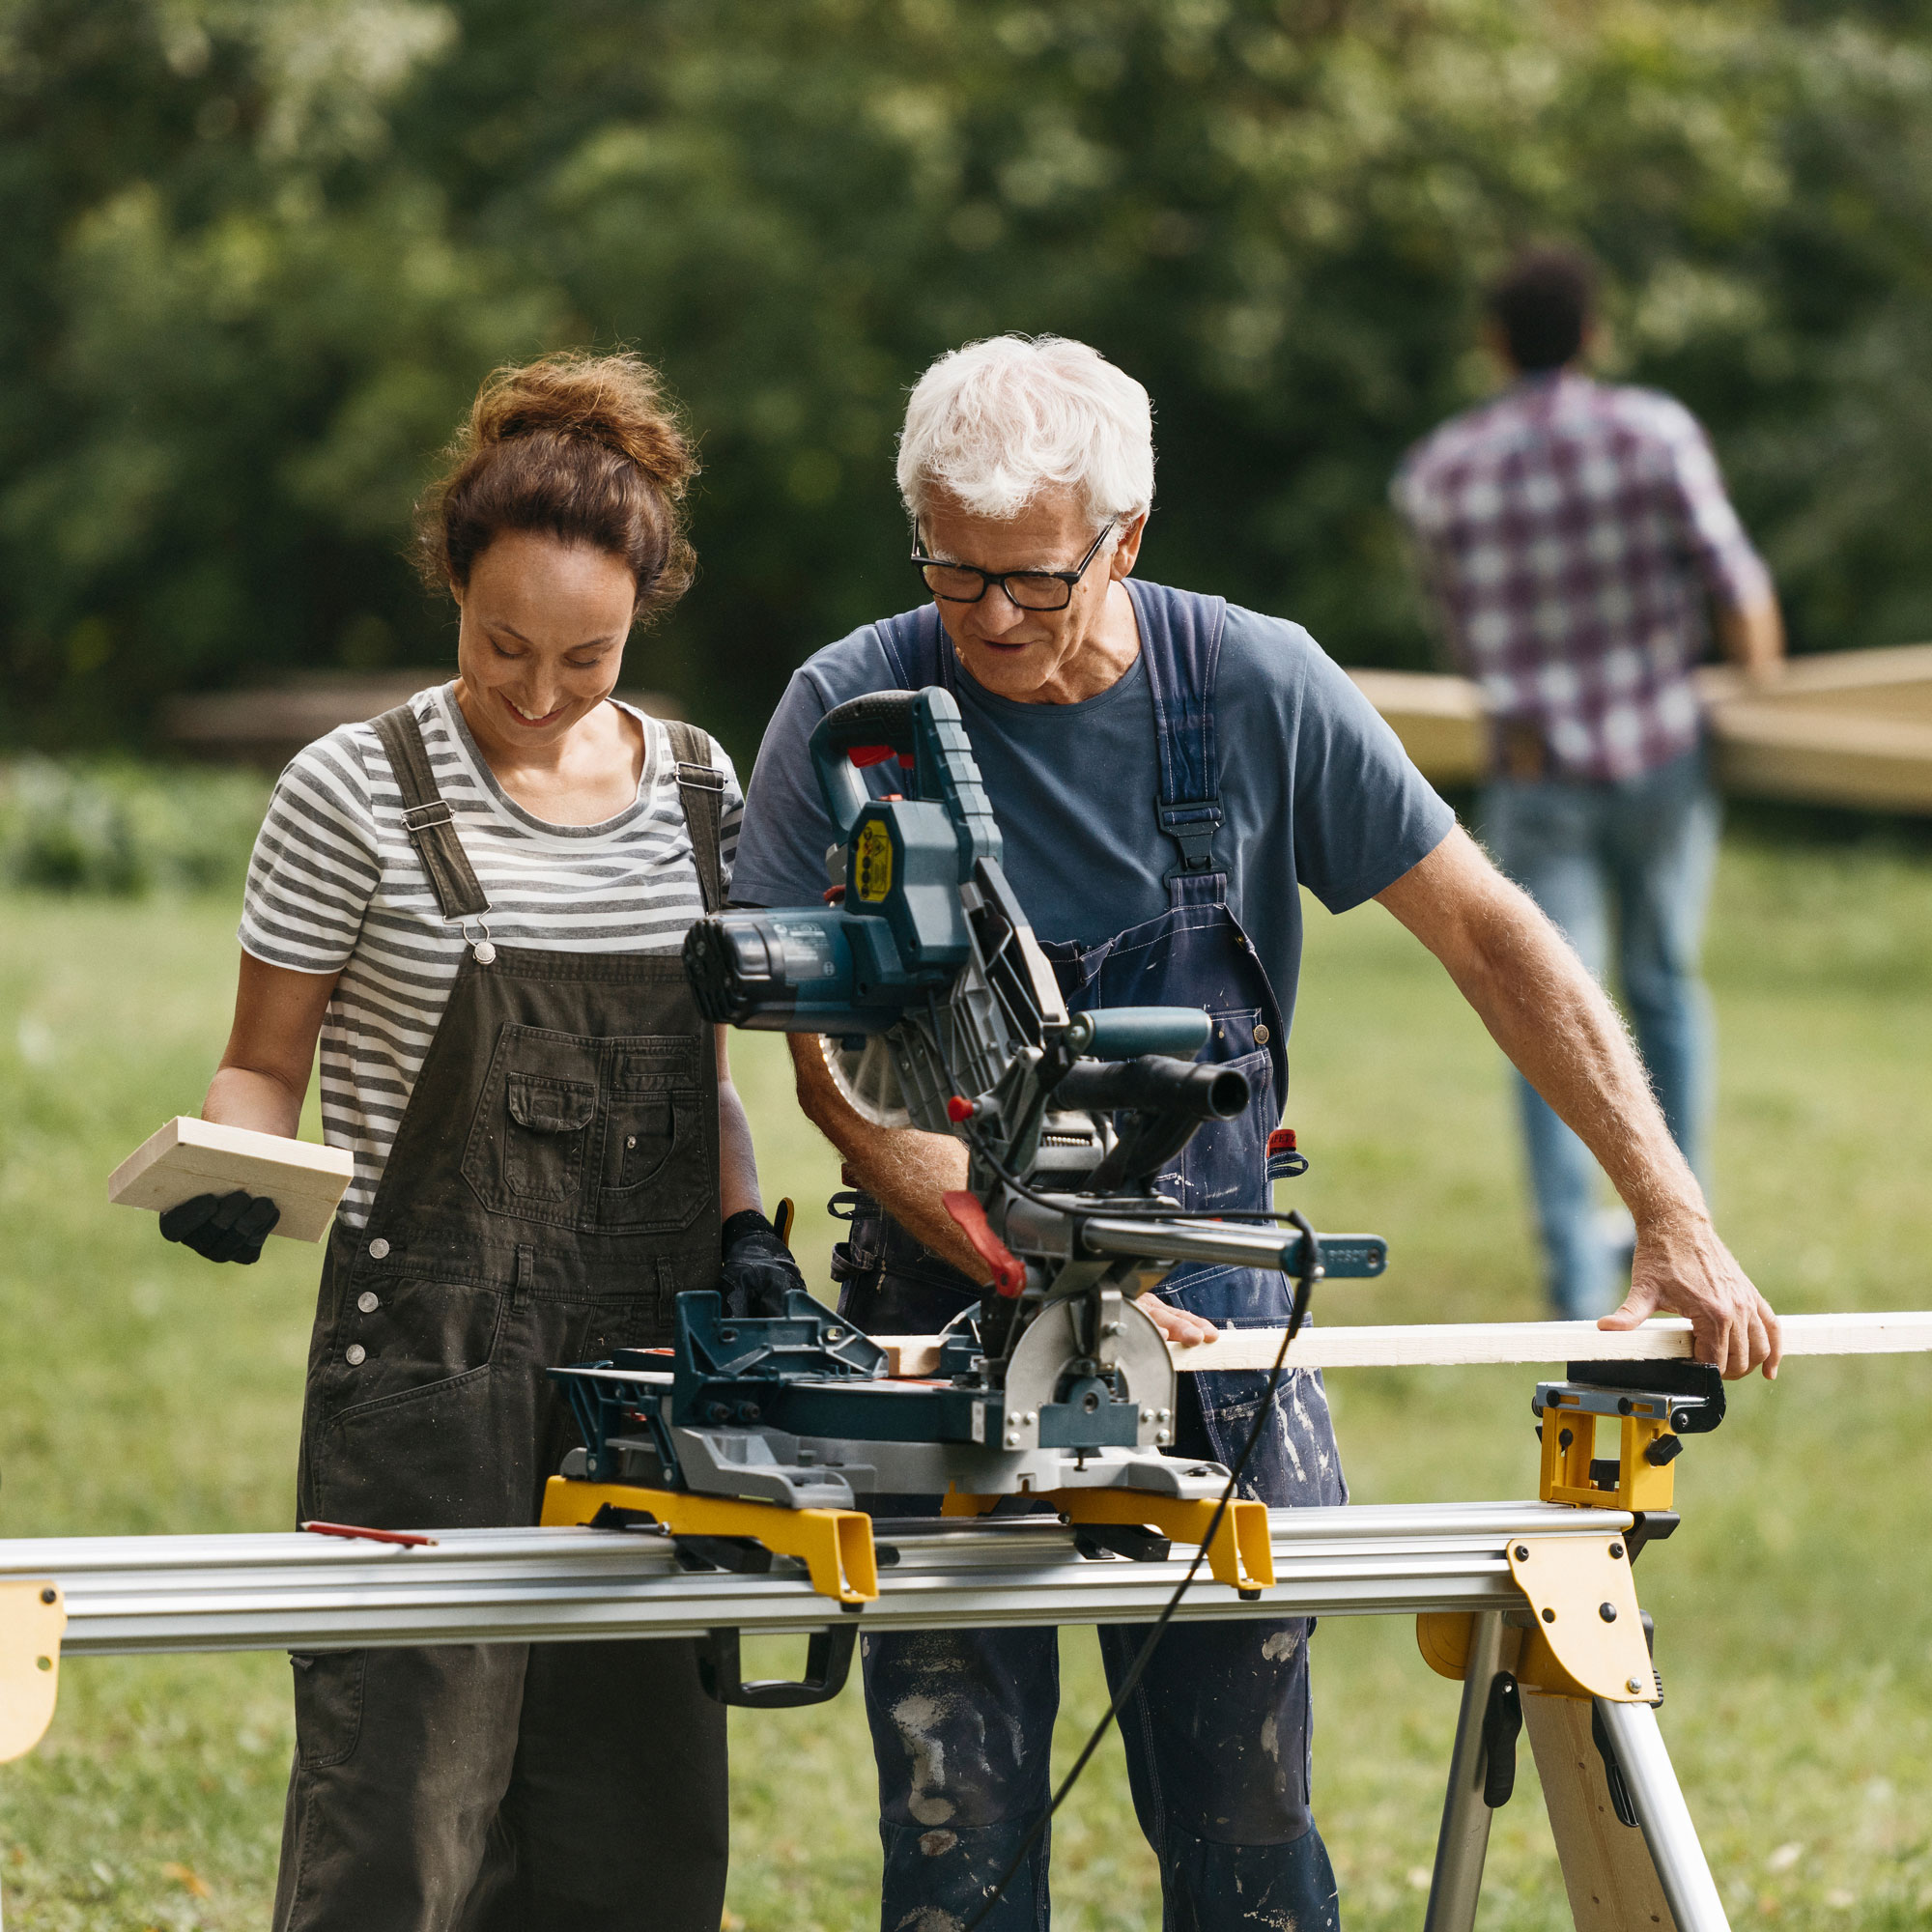 Woman and man sawing planks